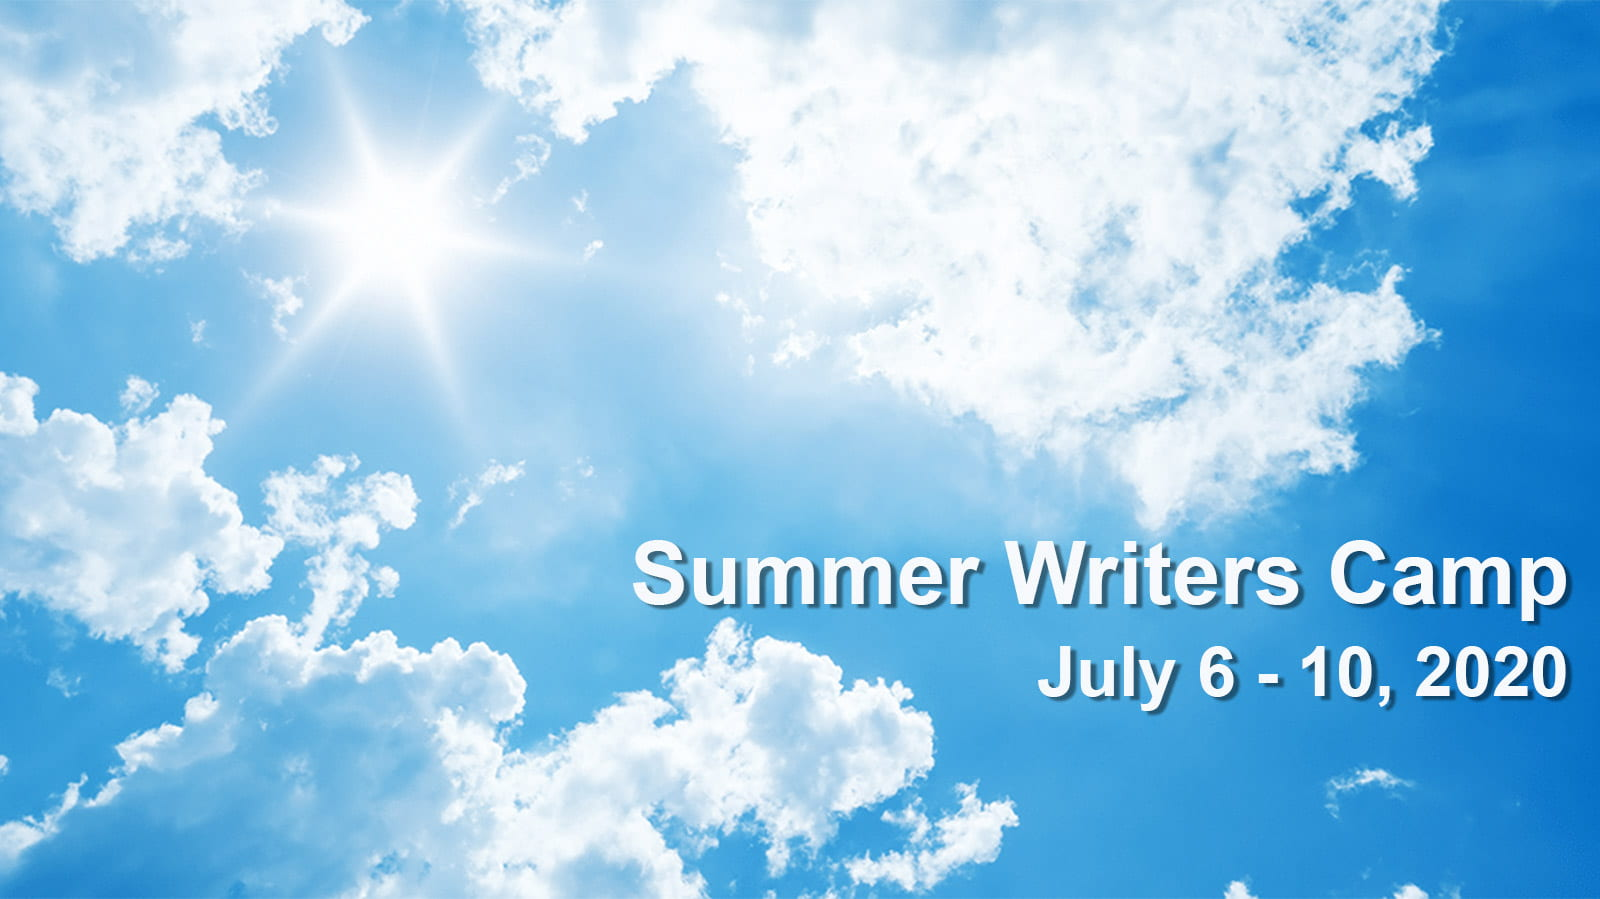 sunny sky with summer writers camp, July 6 to 10, 2020 written over it